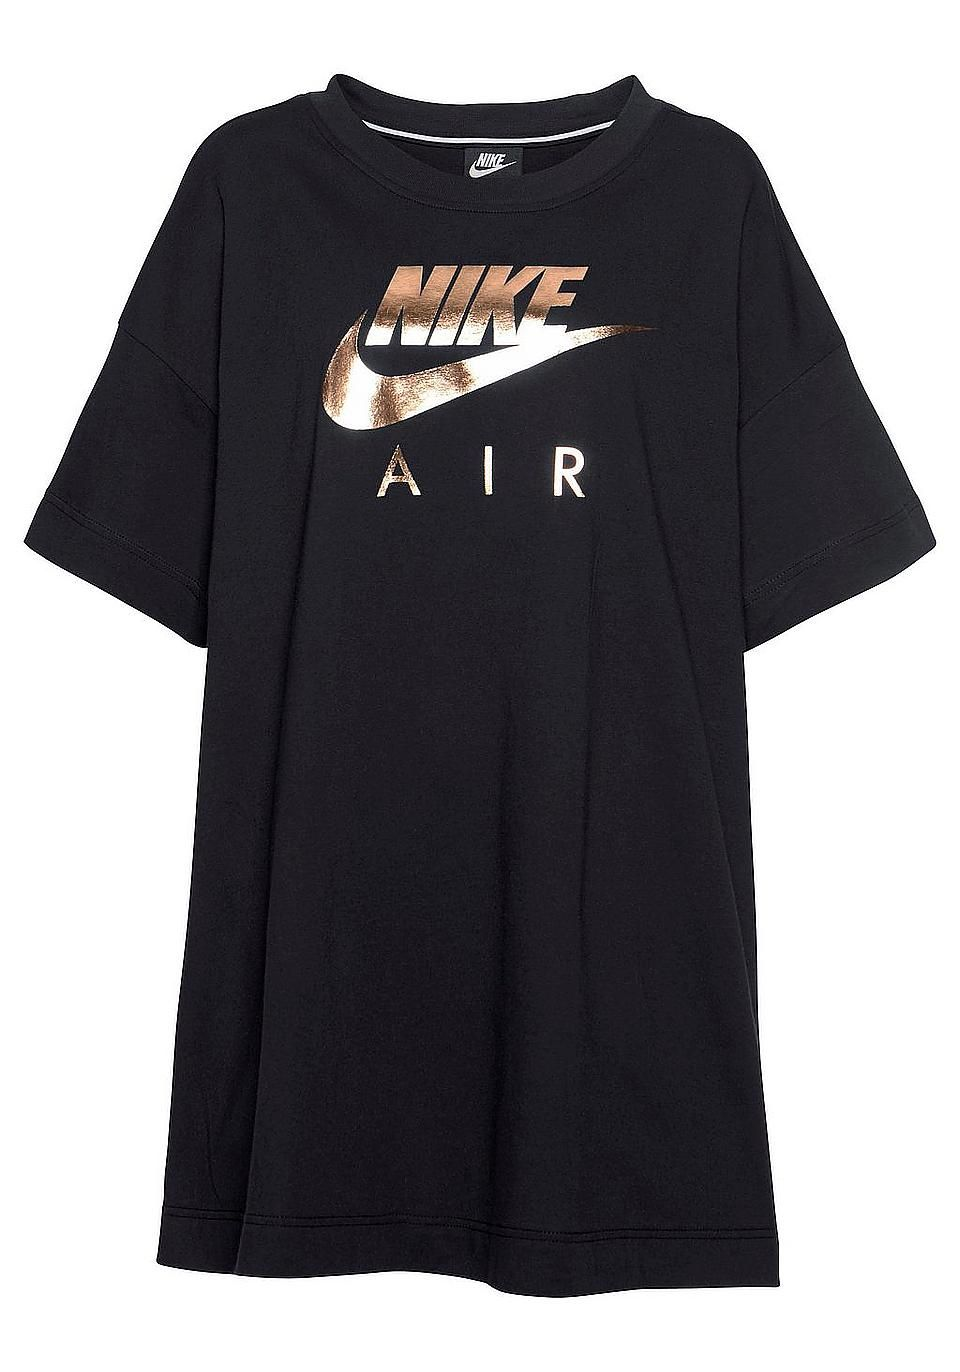 NSW für Nike Shirtkleid DRESS« Sportswear »W AIR in Damen knw8P0O